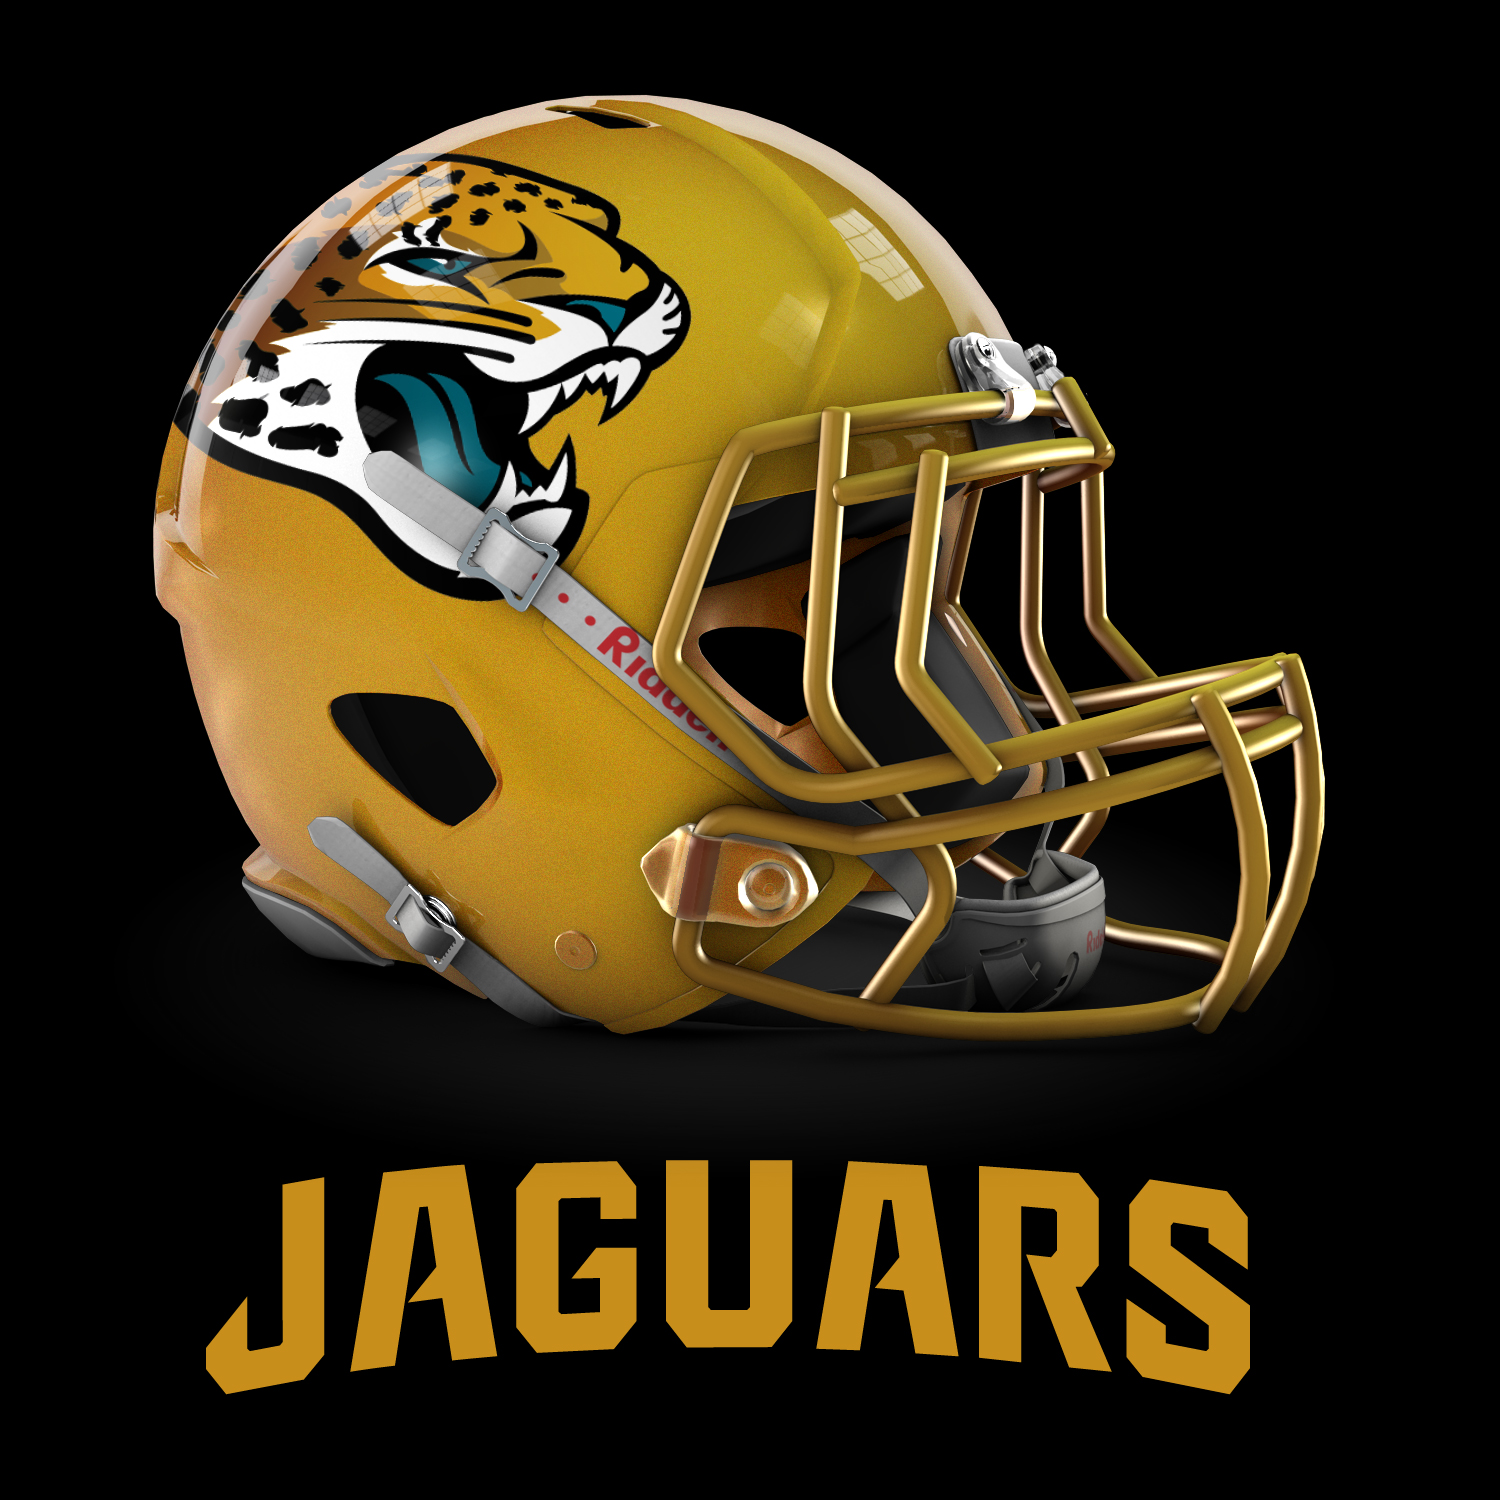 jaguars helmet and home uni concept concepts chris. Black Bedroom Furniture Sets. Home Design Ideas